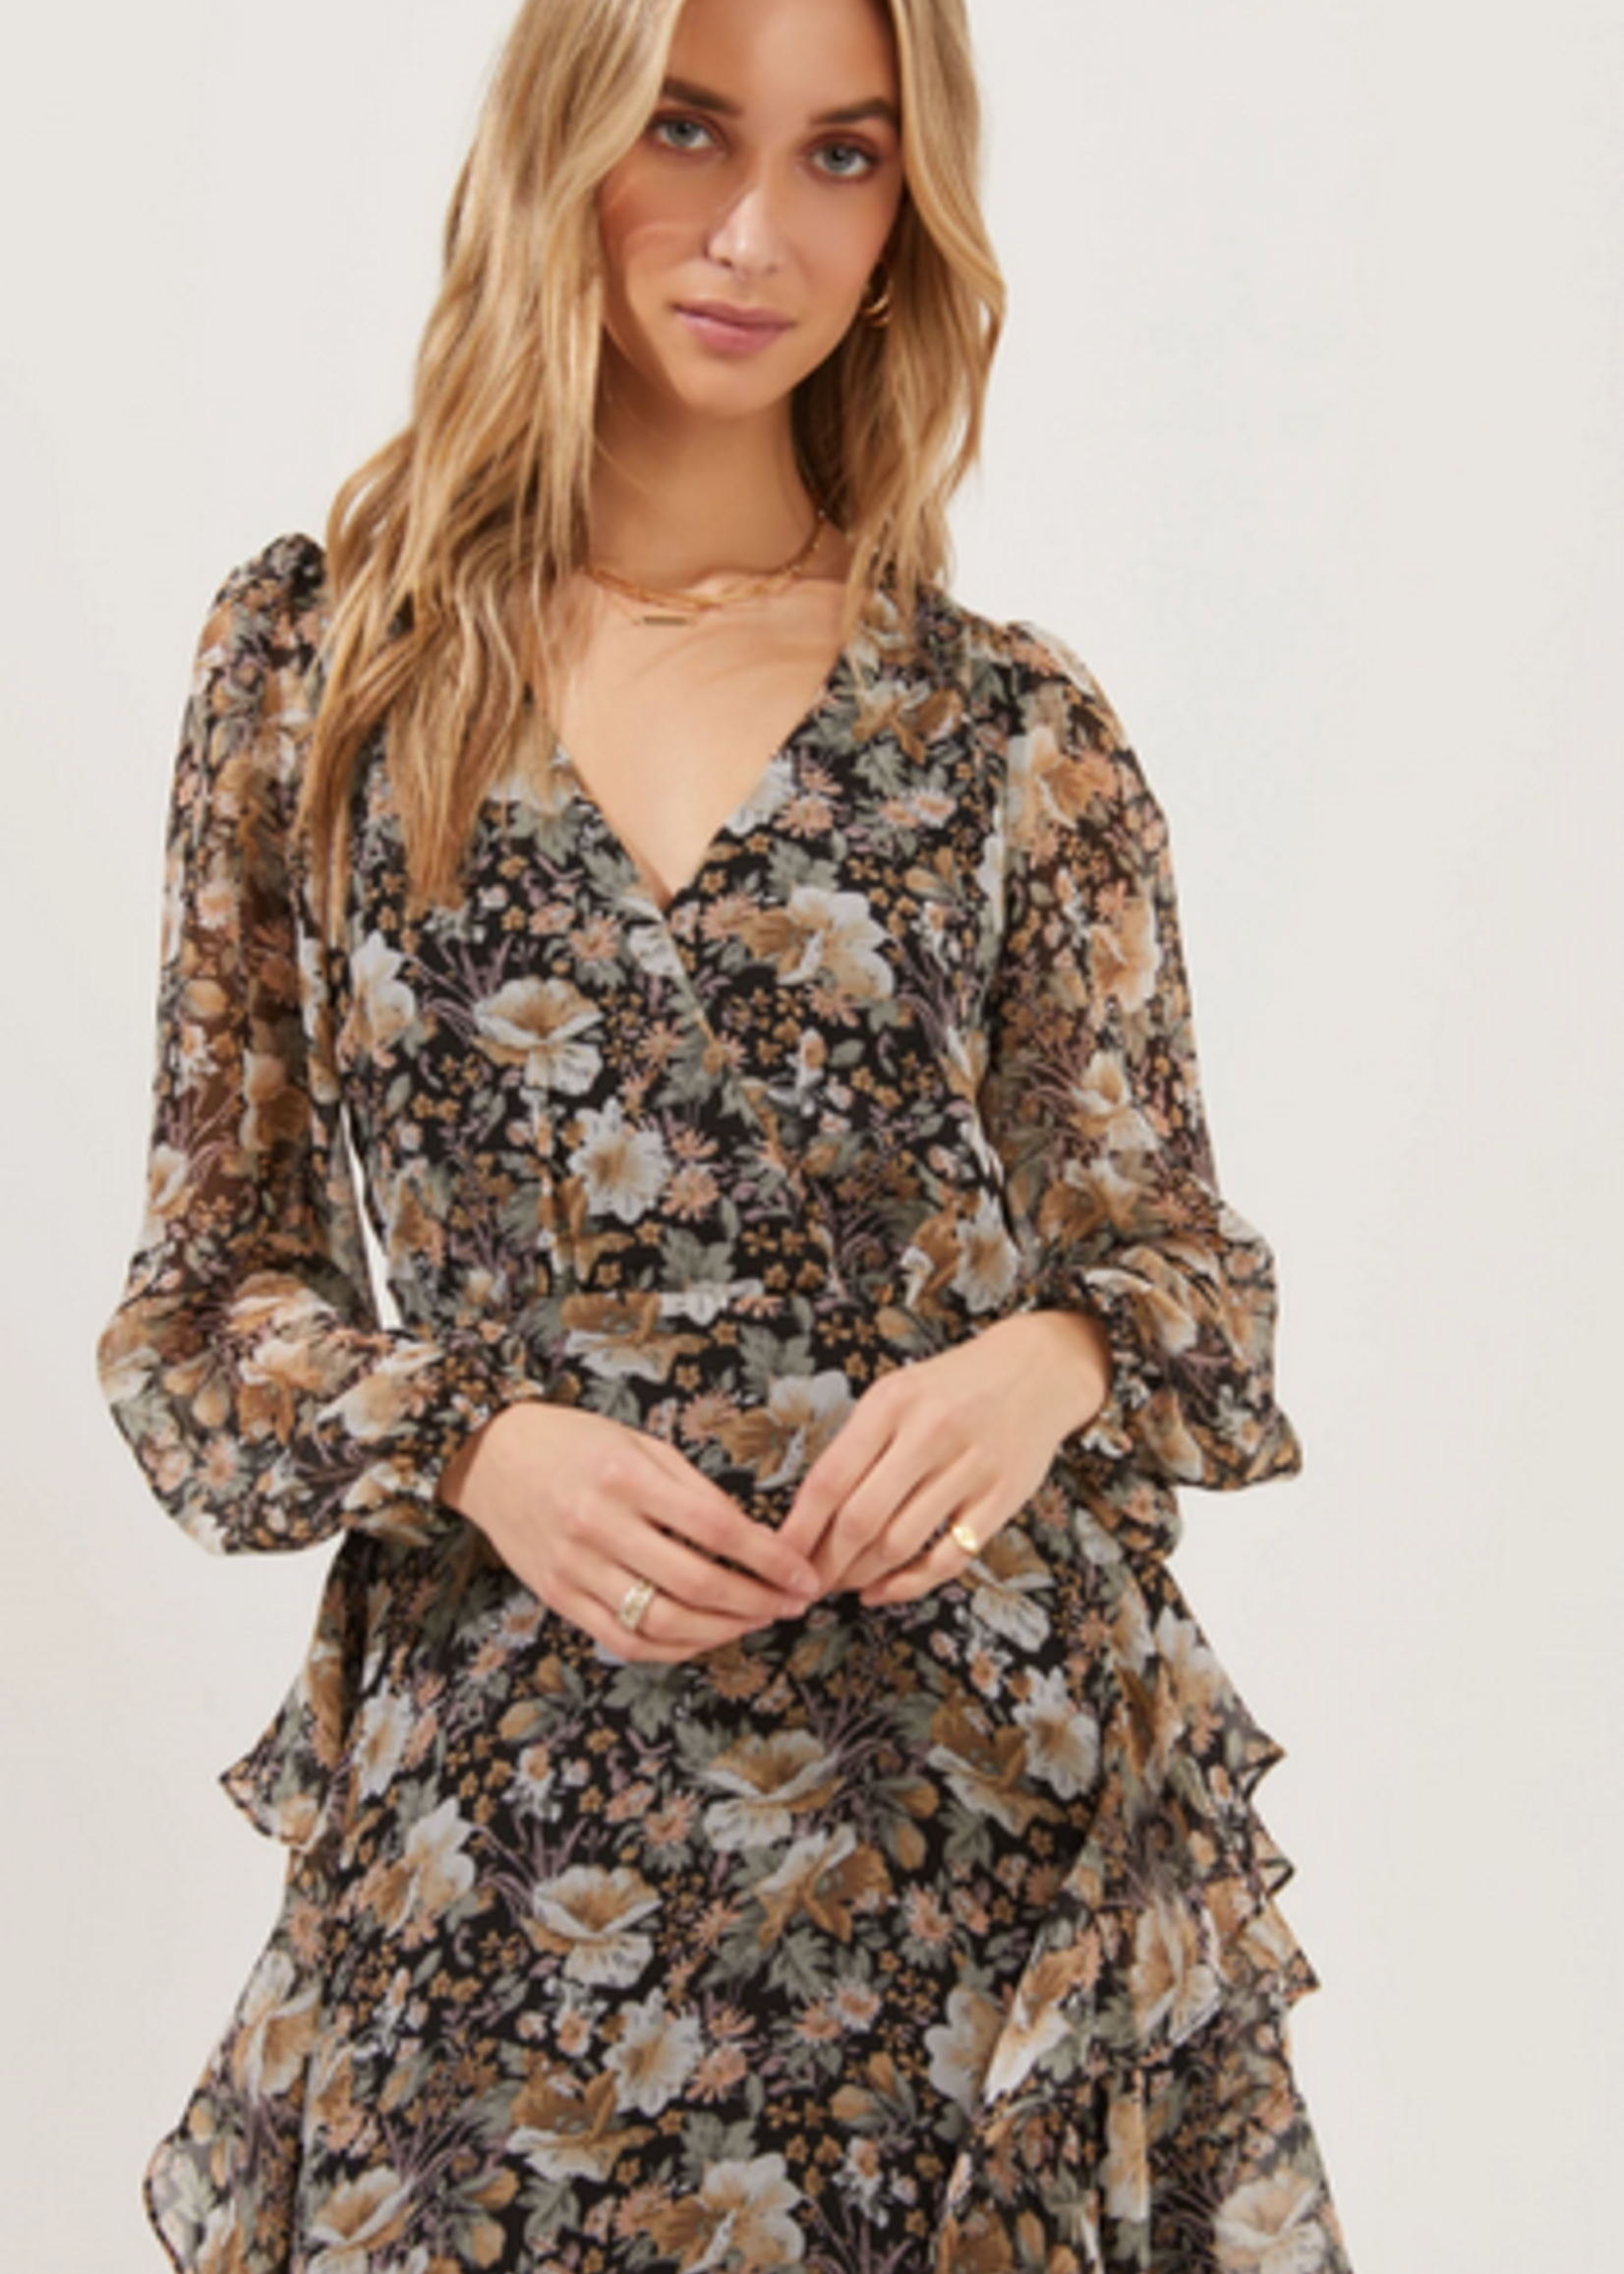 Elitaire Boutique Raleigh Dress in Black Multi Floral